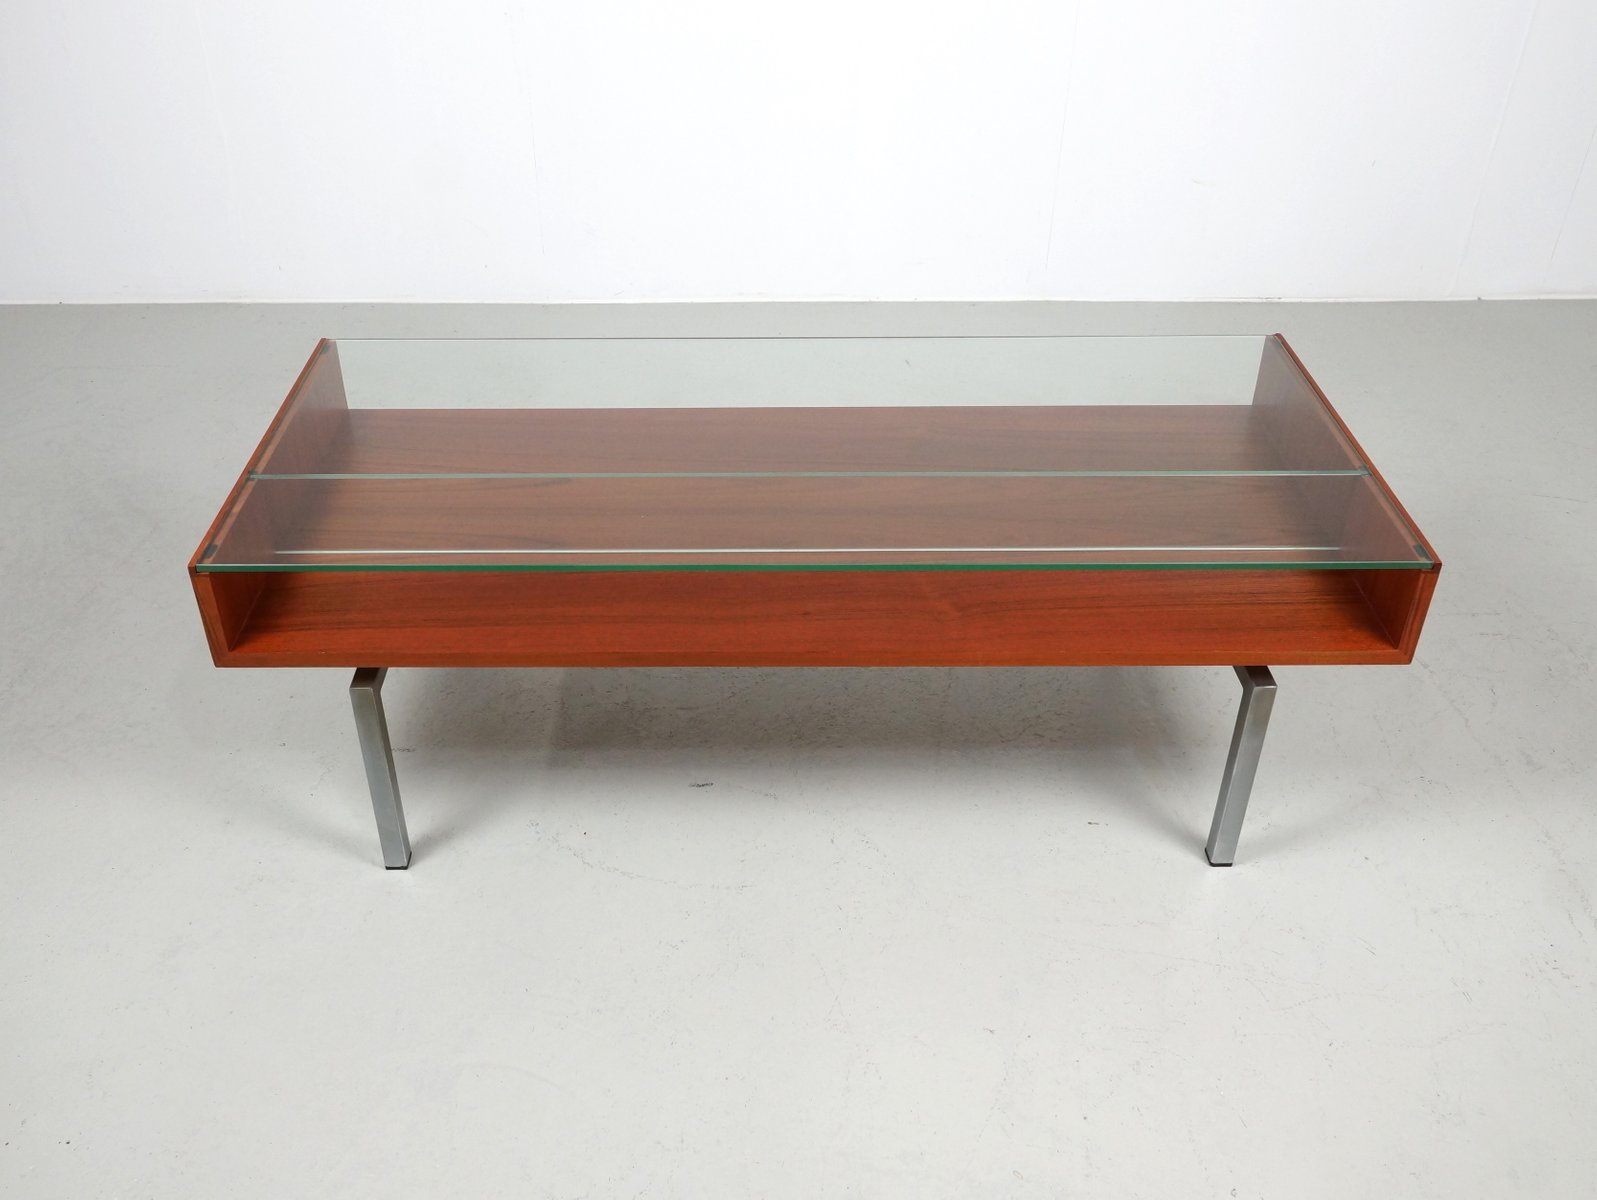 Table basse vintage en teck et verre en vente sur pamono - Table basse en verre but ...